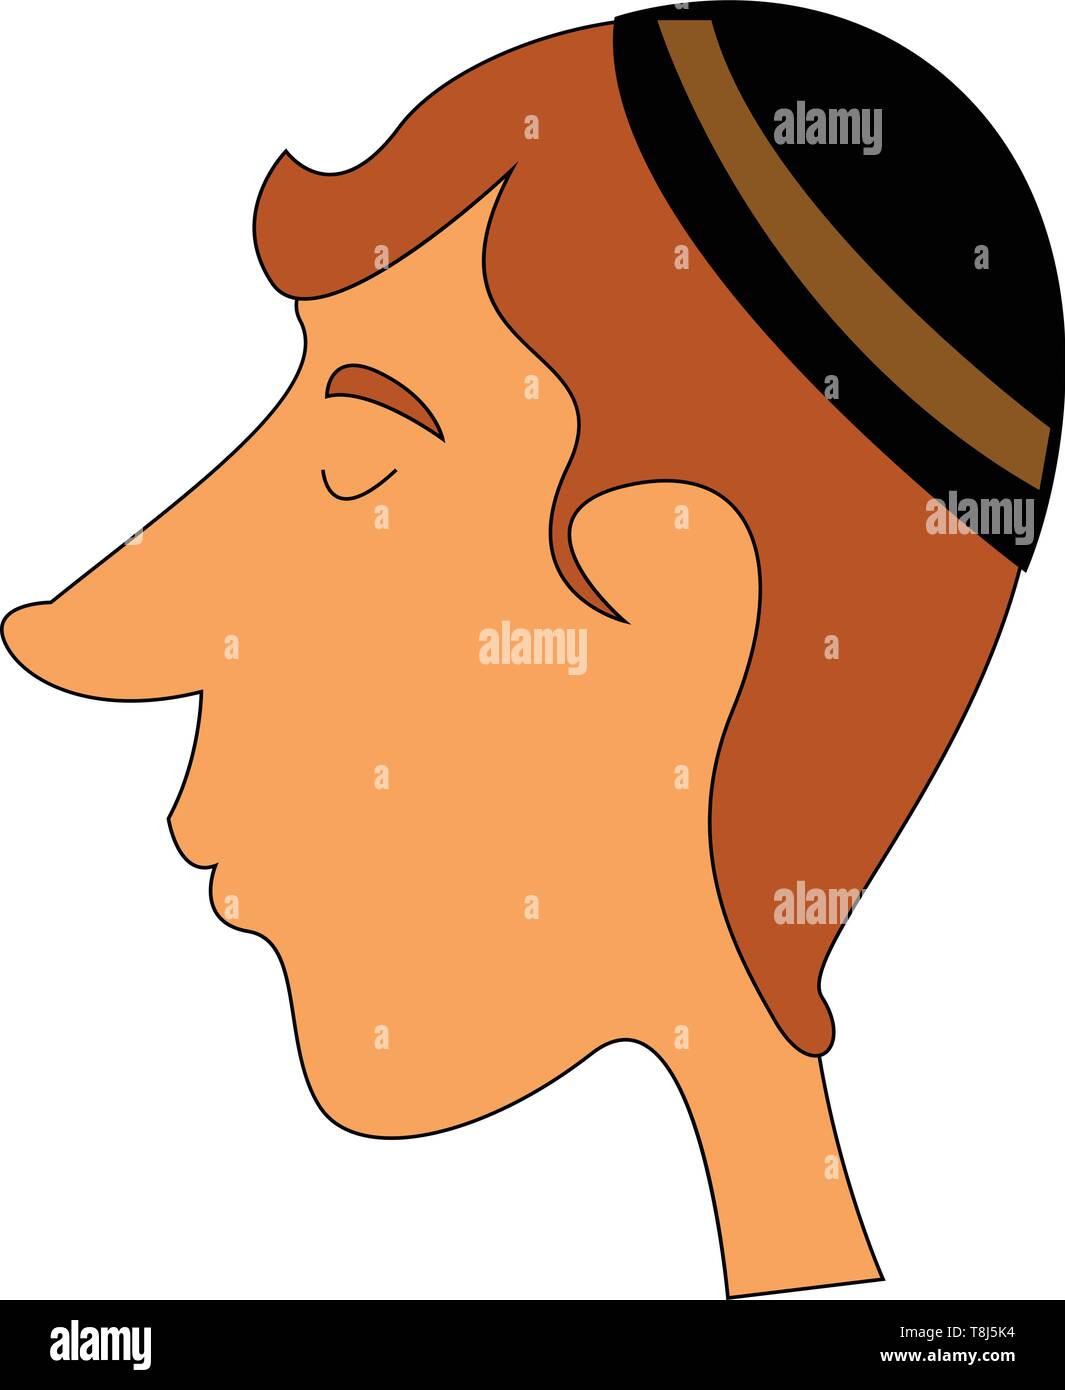 A jewish guy with long nose wearing a round jewish cap over his head, vector, color drawing or illustration. - Stock Vector